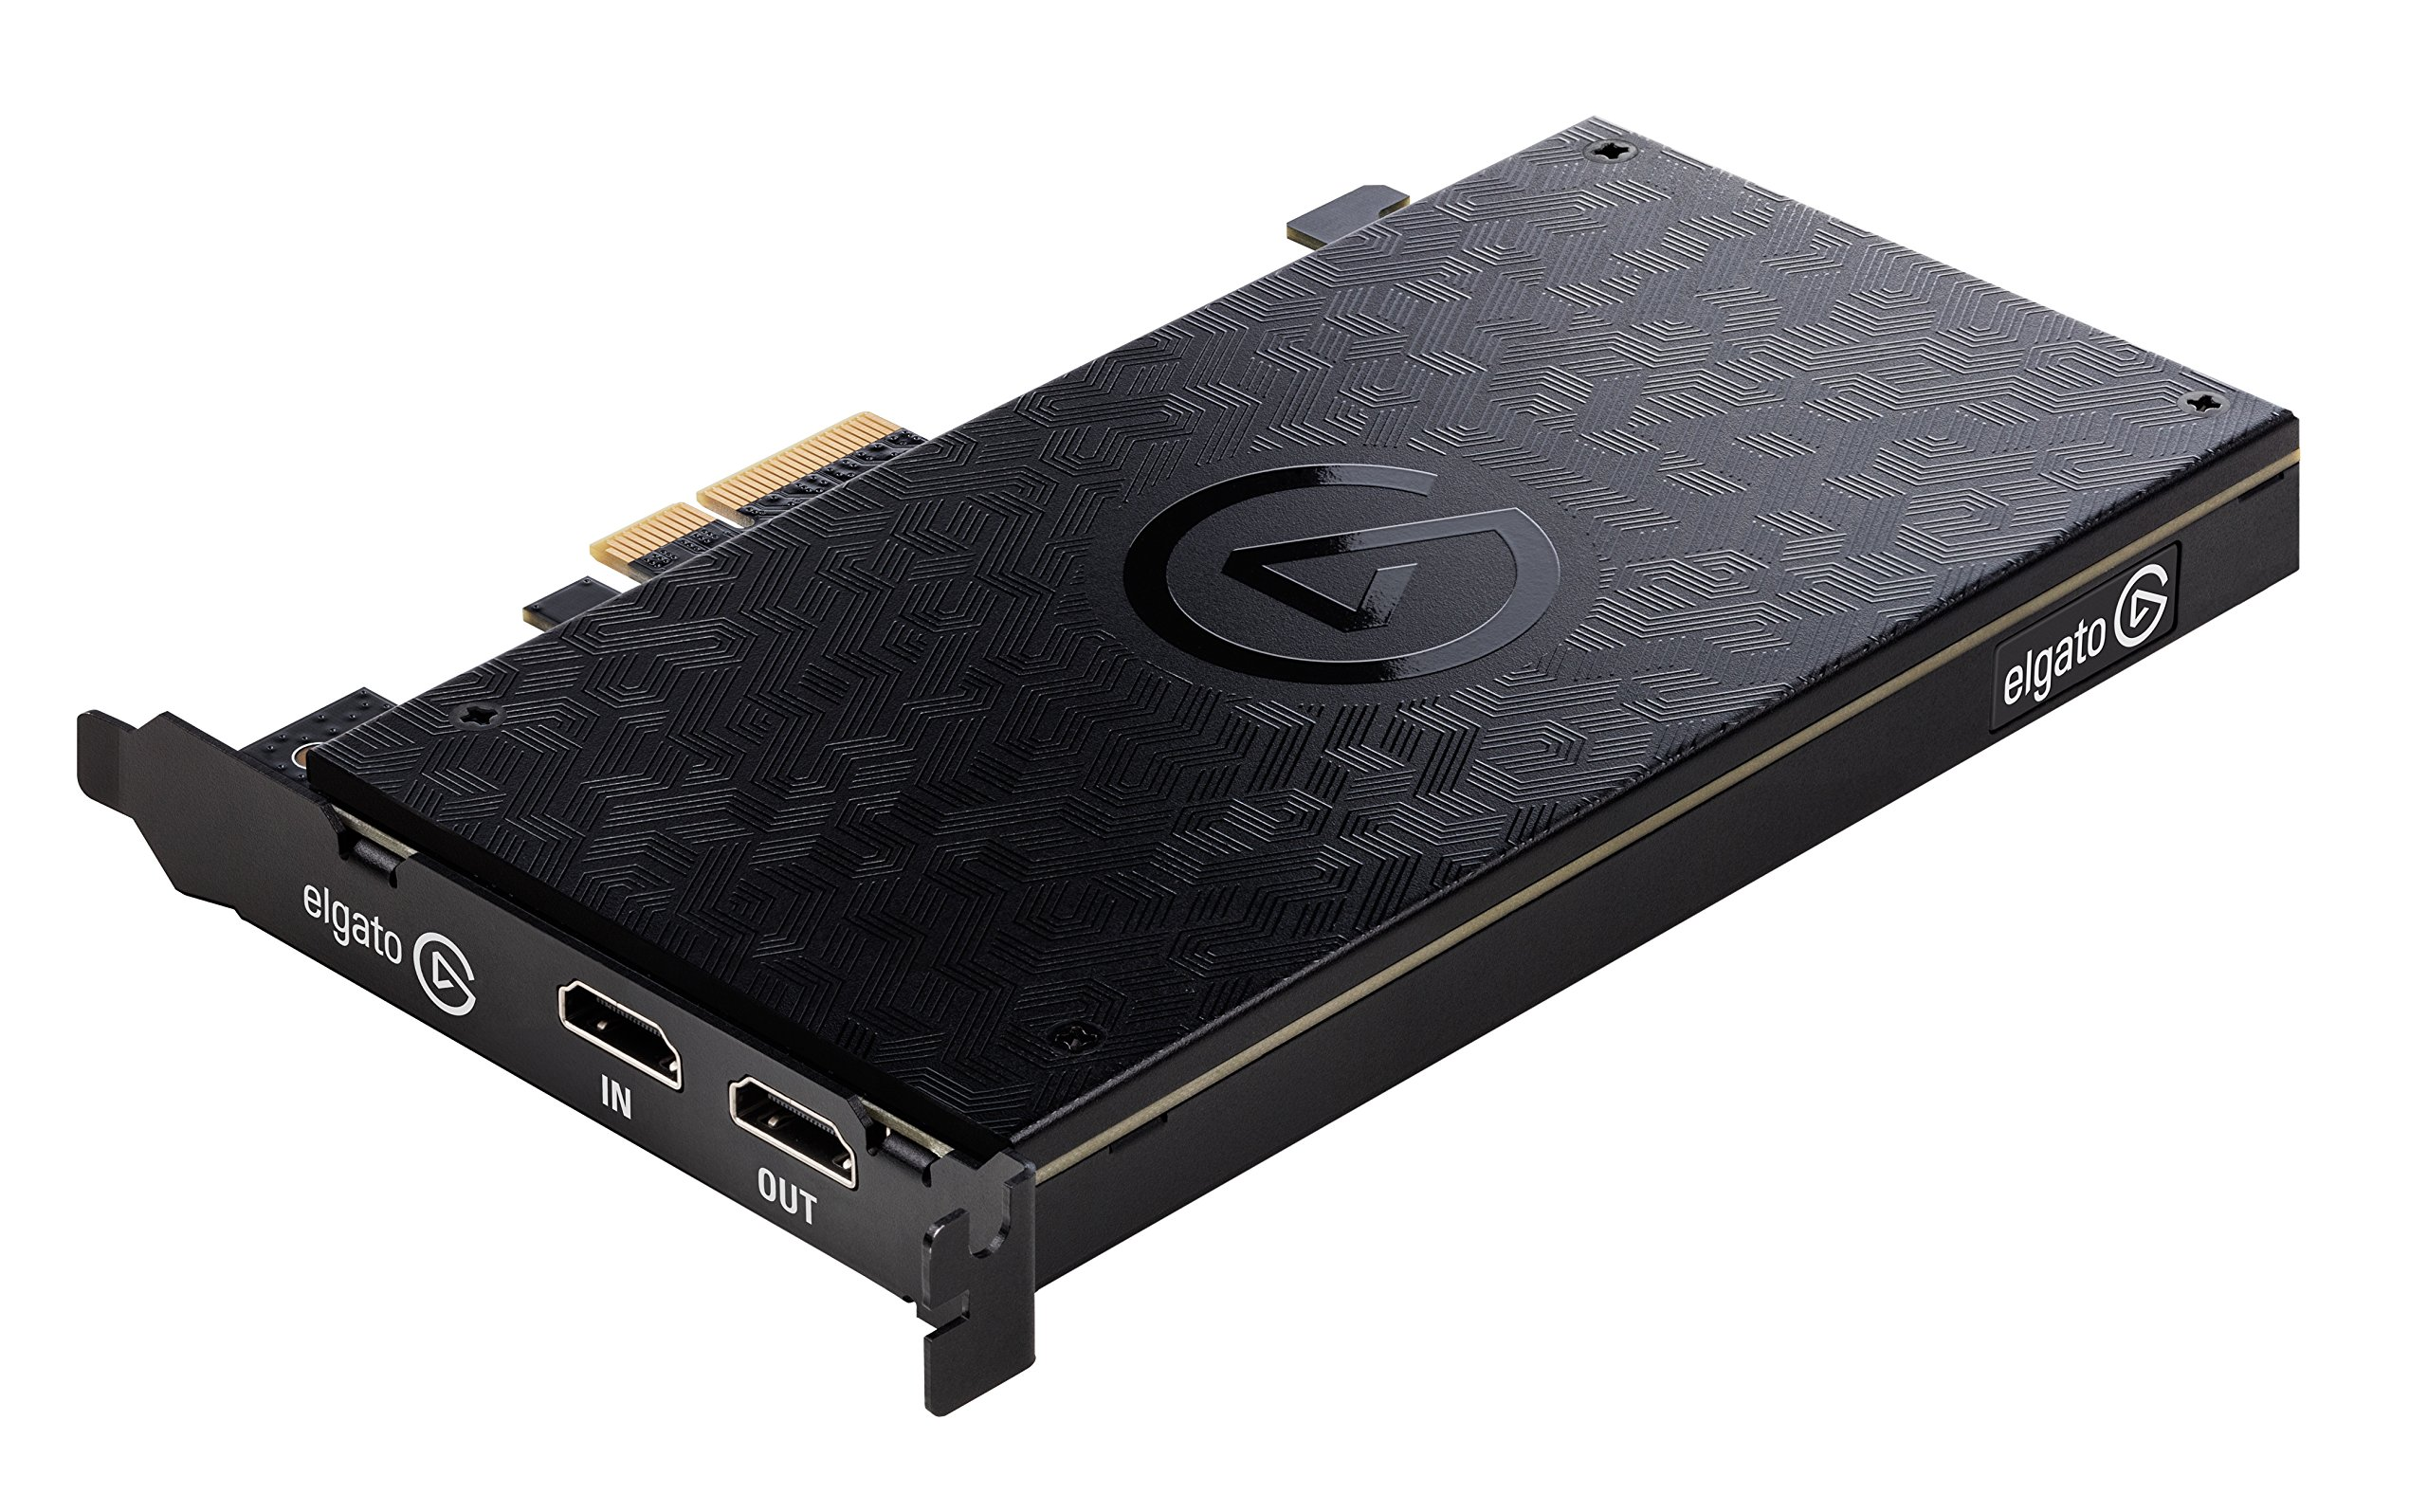 Elgato Game Capture 4K60 Pro - 4K 60fps capture card with ultra-low latency technology for recording PS4 Pro and Xbox One X gameplay, PCIe x4